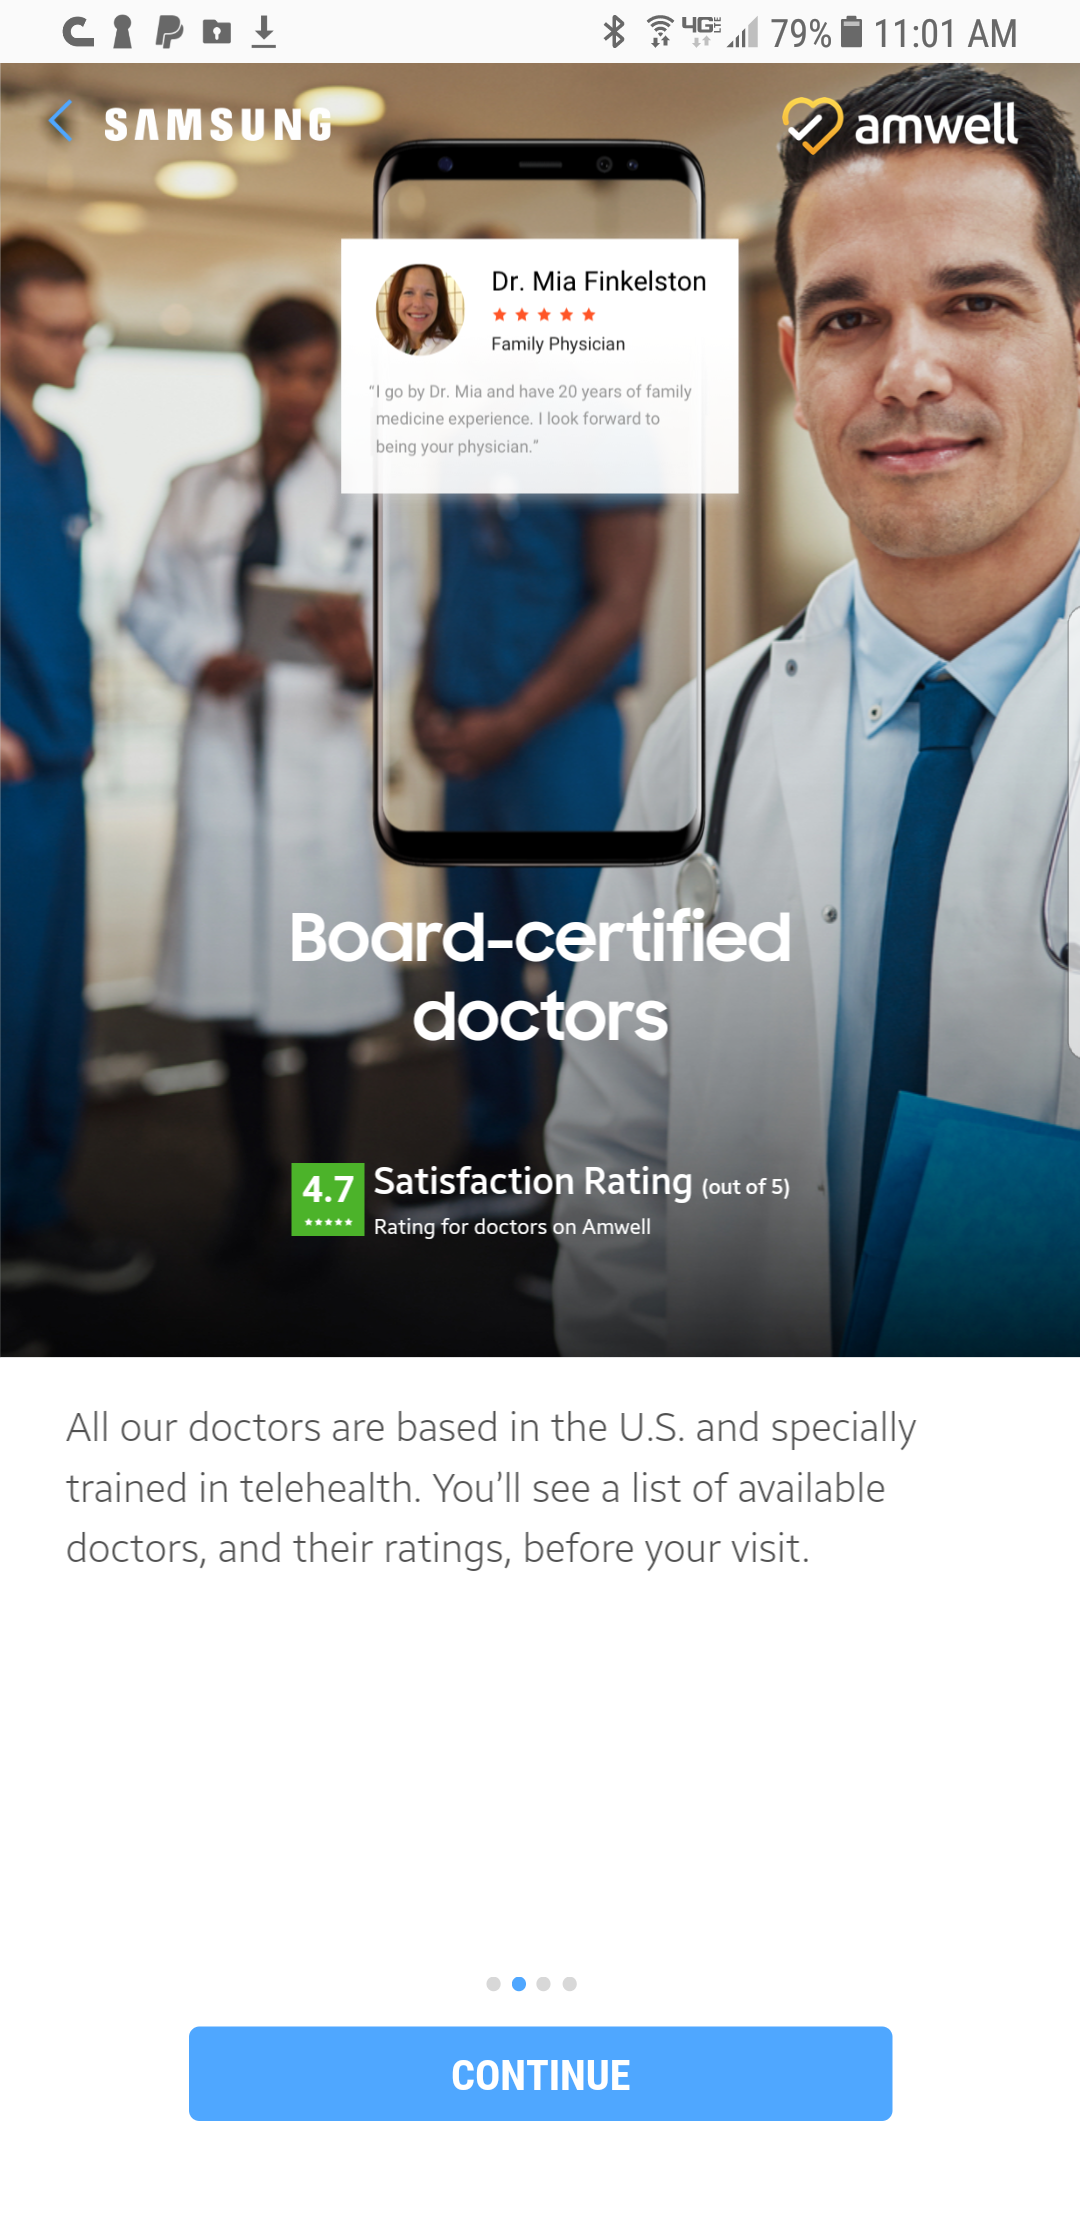 With Samsung Health Ask an Expert you can see a board-certified doctor in just minutes via your Samsung device – no appointments needed.